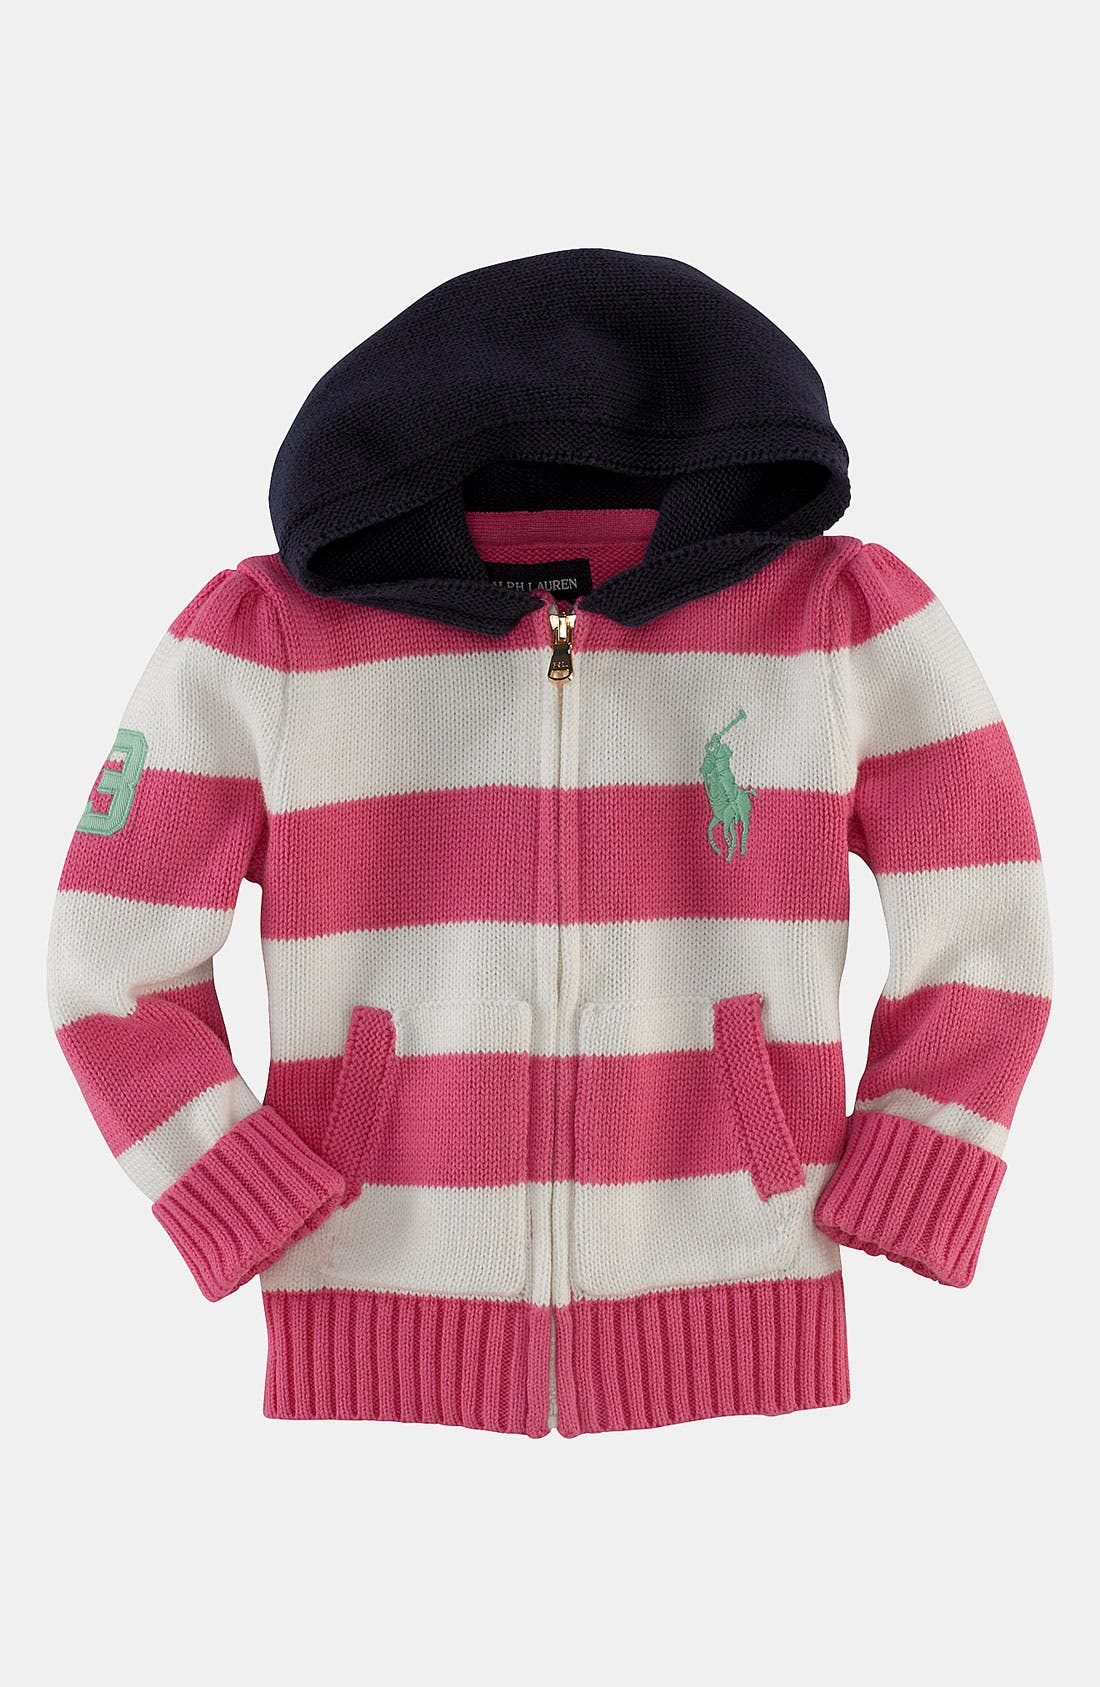 Alternate Image 1 Selected - Ralph Lauren Knit Hoodie (Infant)